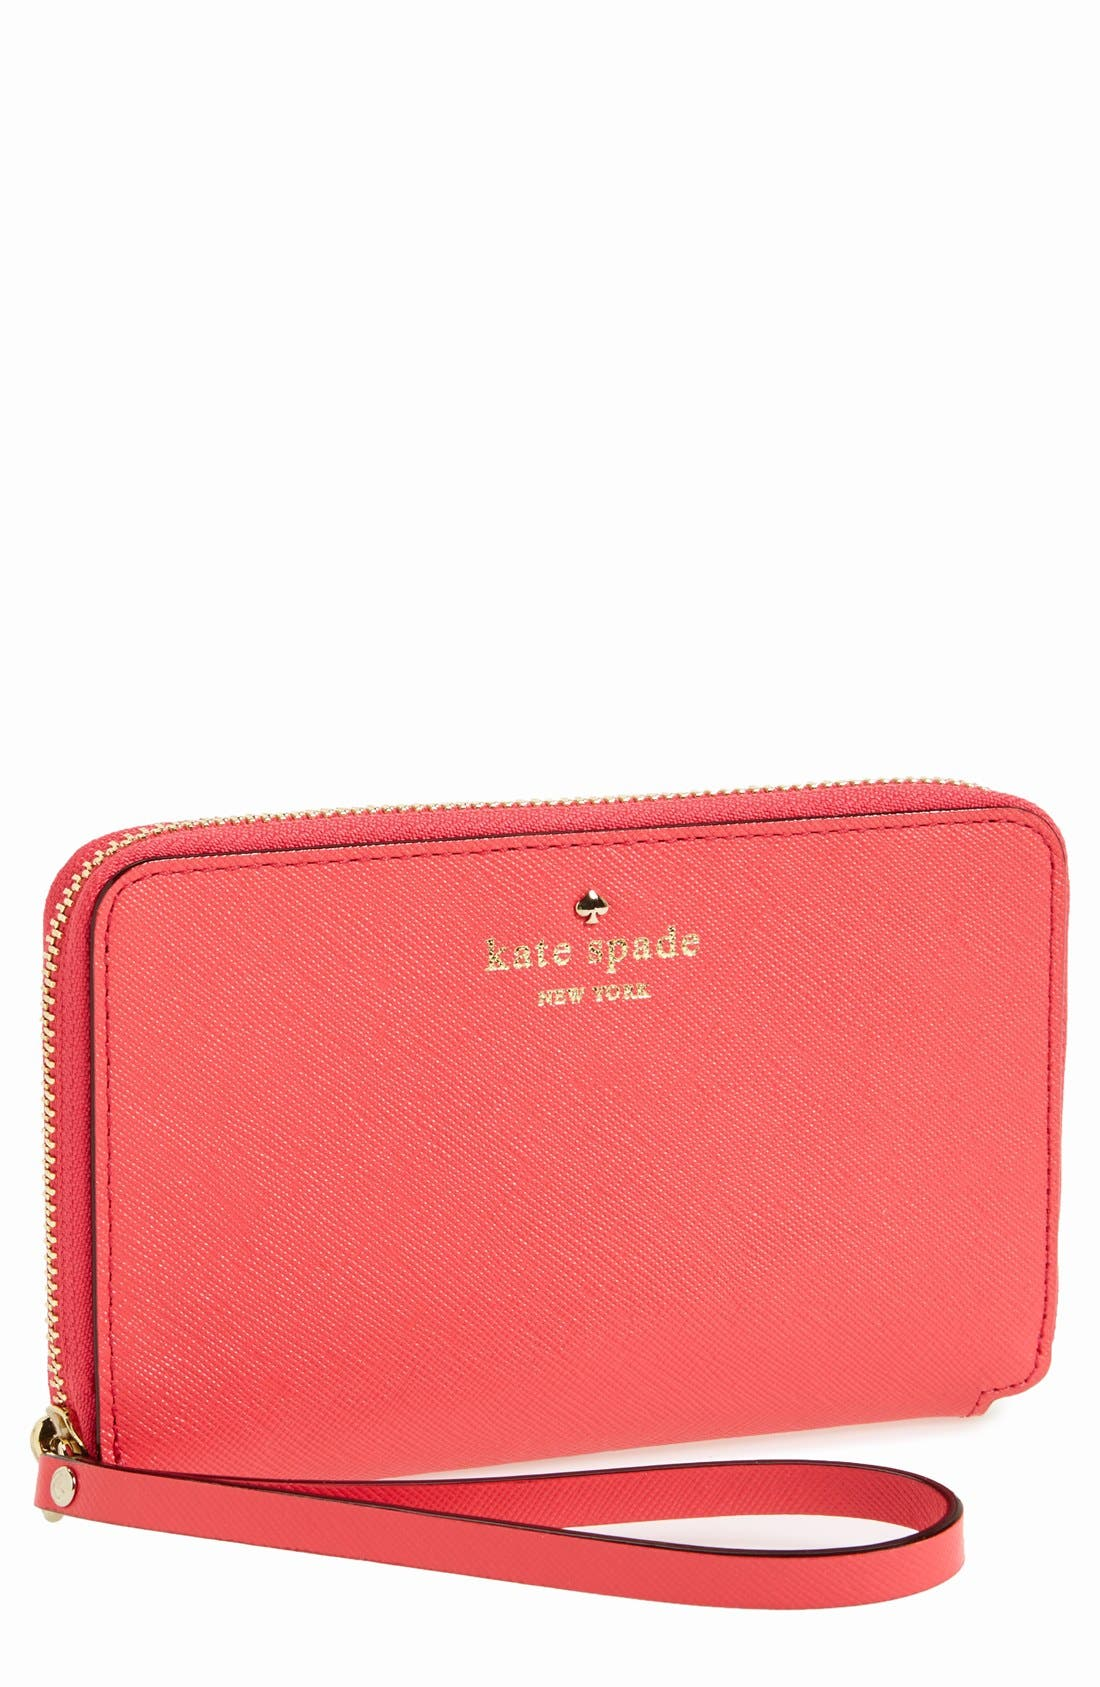 Main Image - kate spade new york 'cherry lane - laurie' wallet